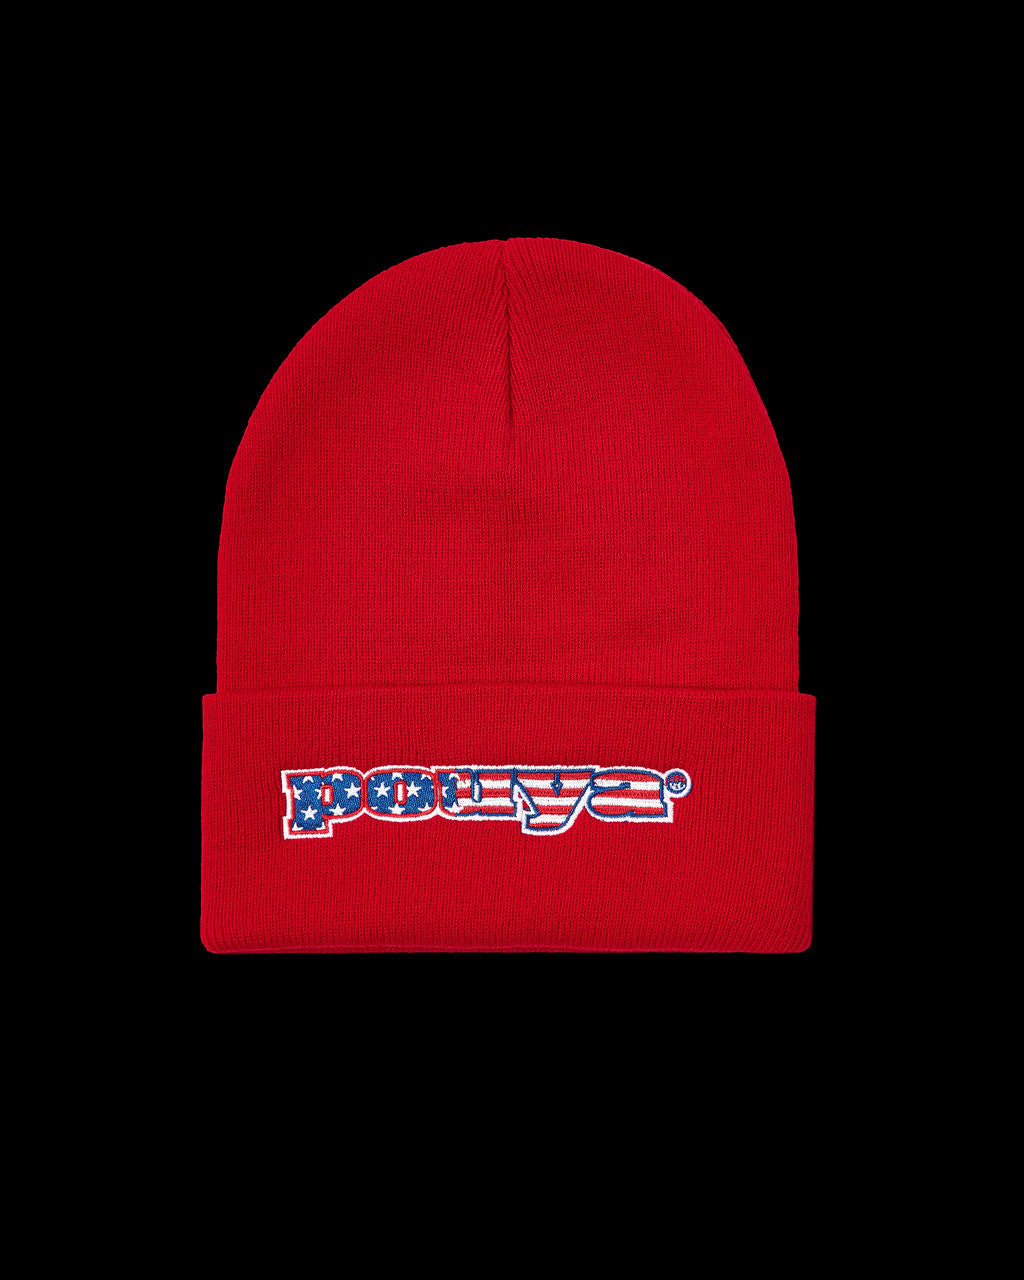 STARS & STRIPES BEANIE - RED